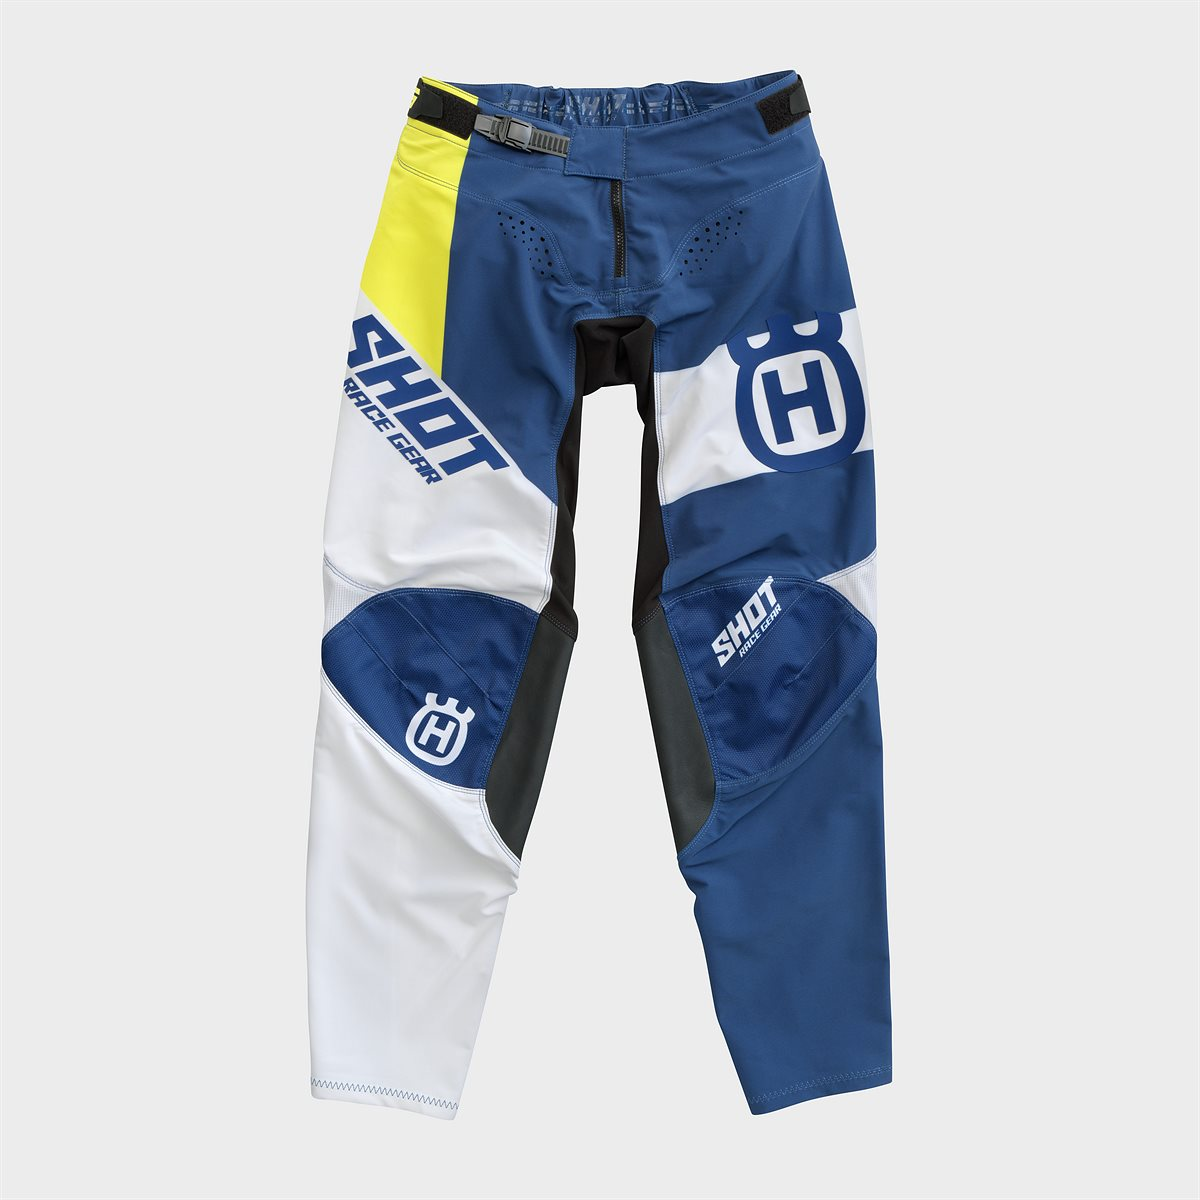 Factory Replica Pants (2)